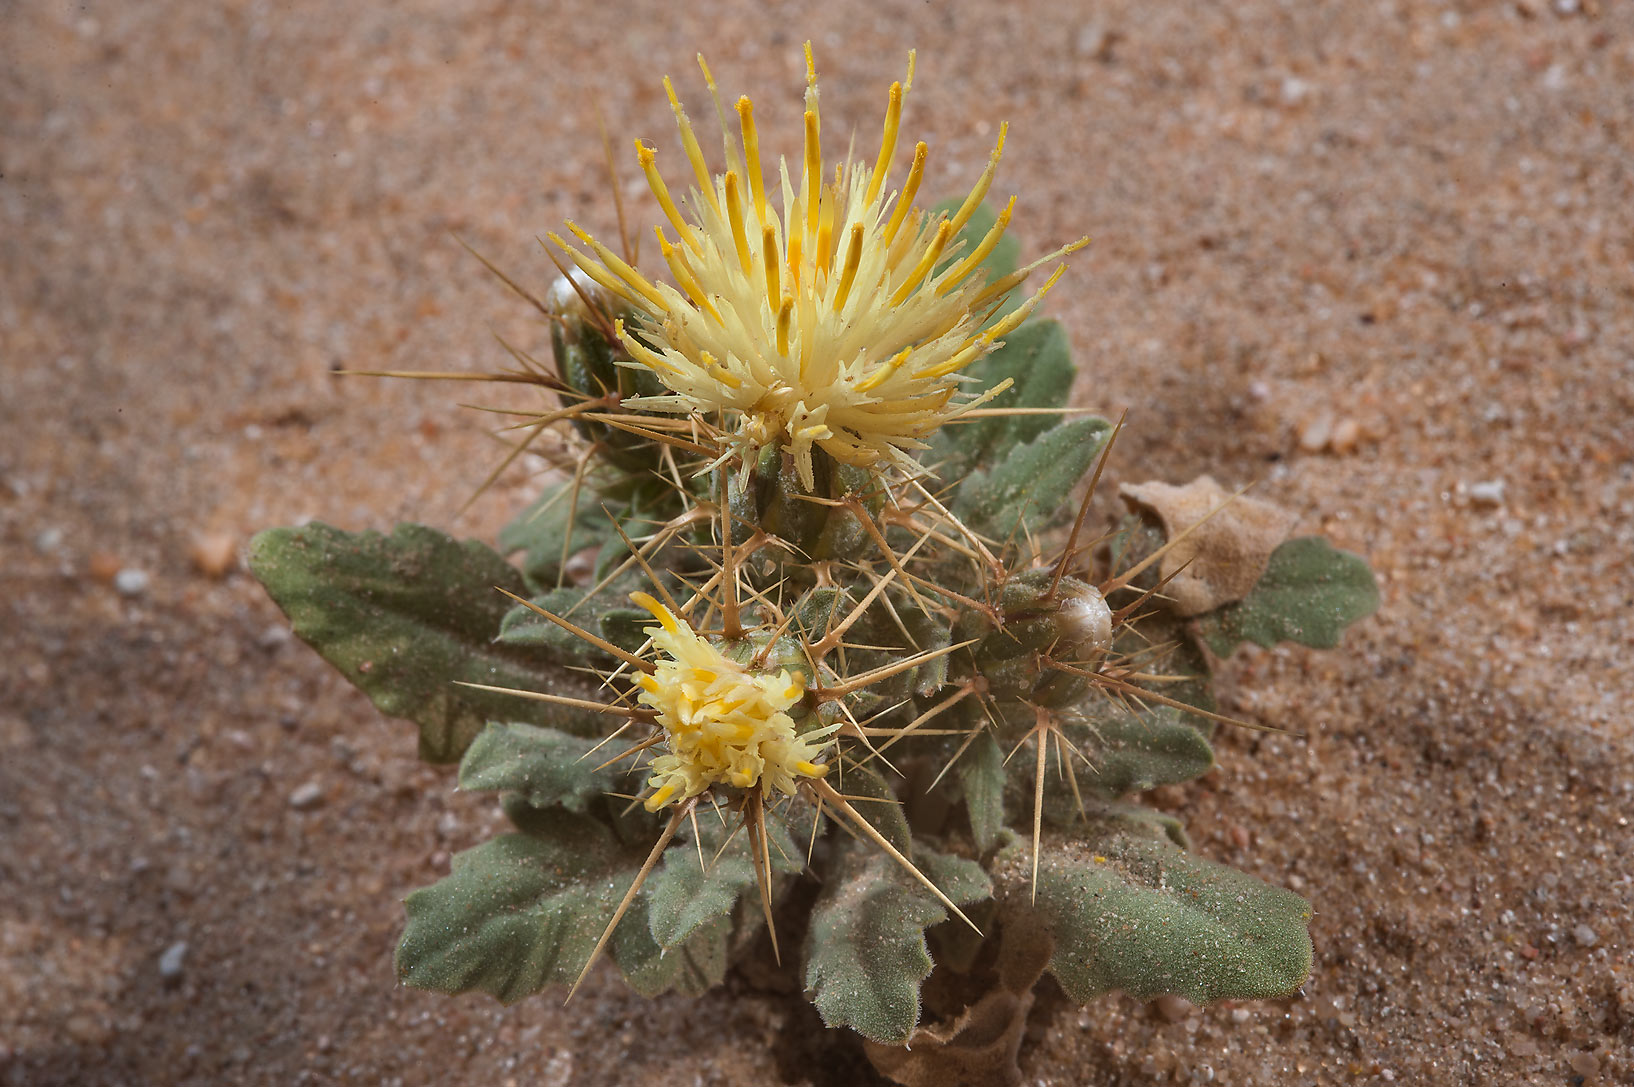 Small blooming plant of Centaurea sinaica (local...Khashm an Nakhsh). South-western Qatar